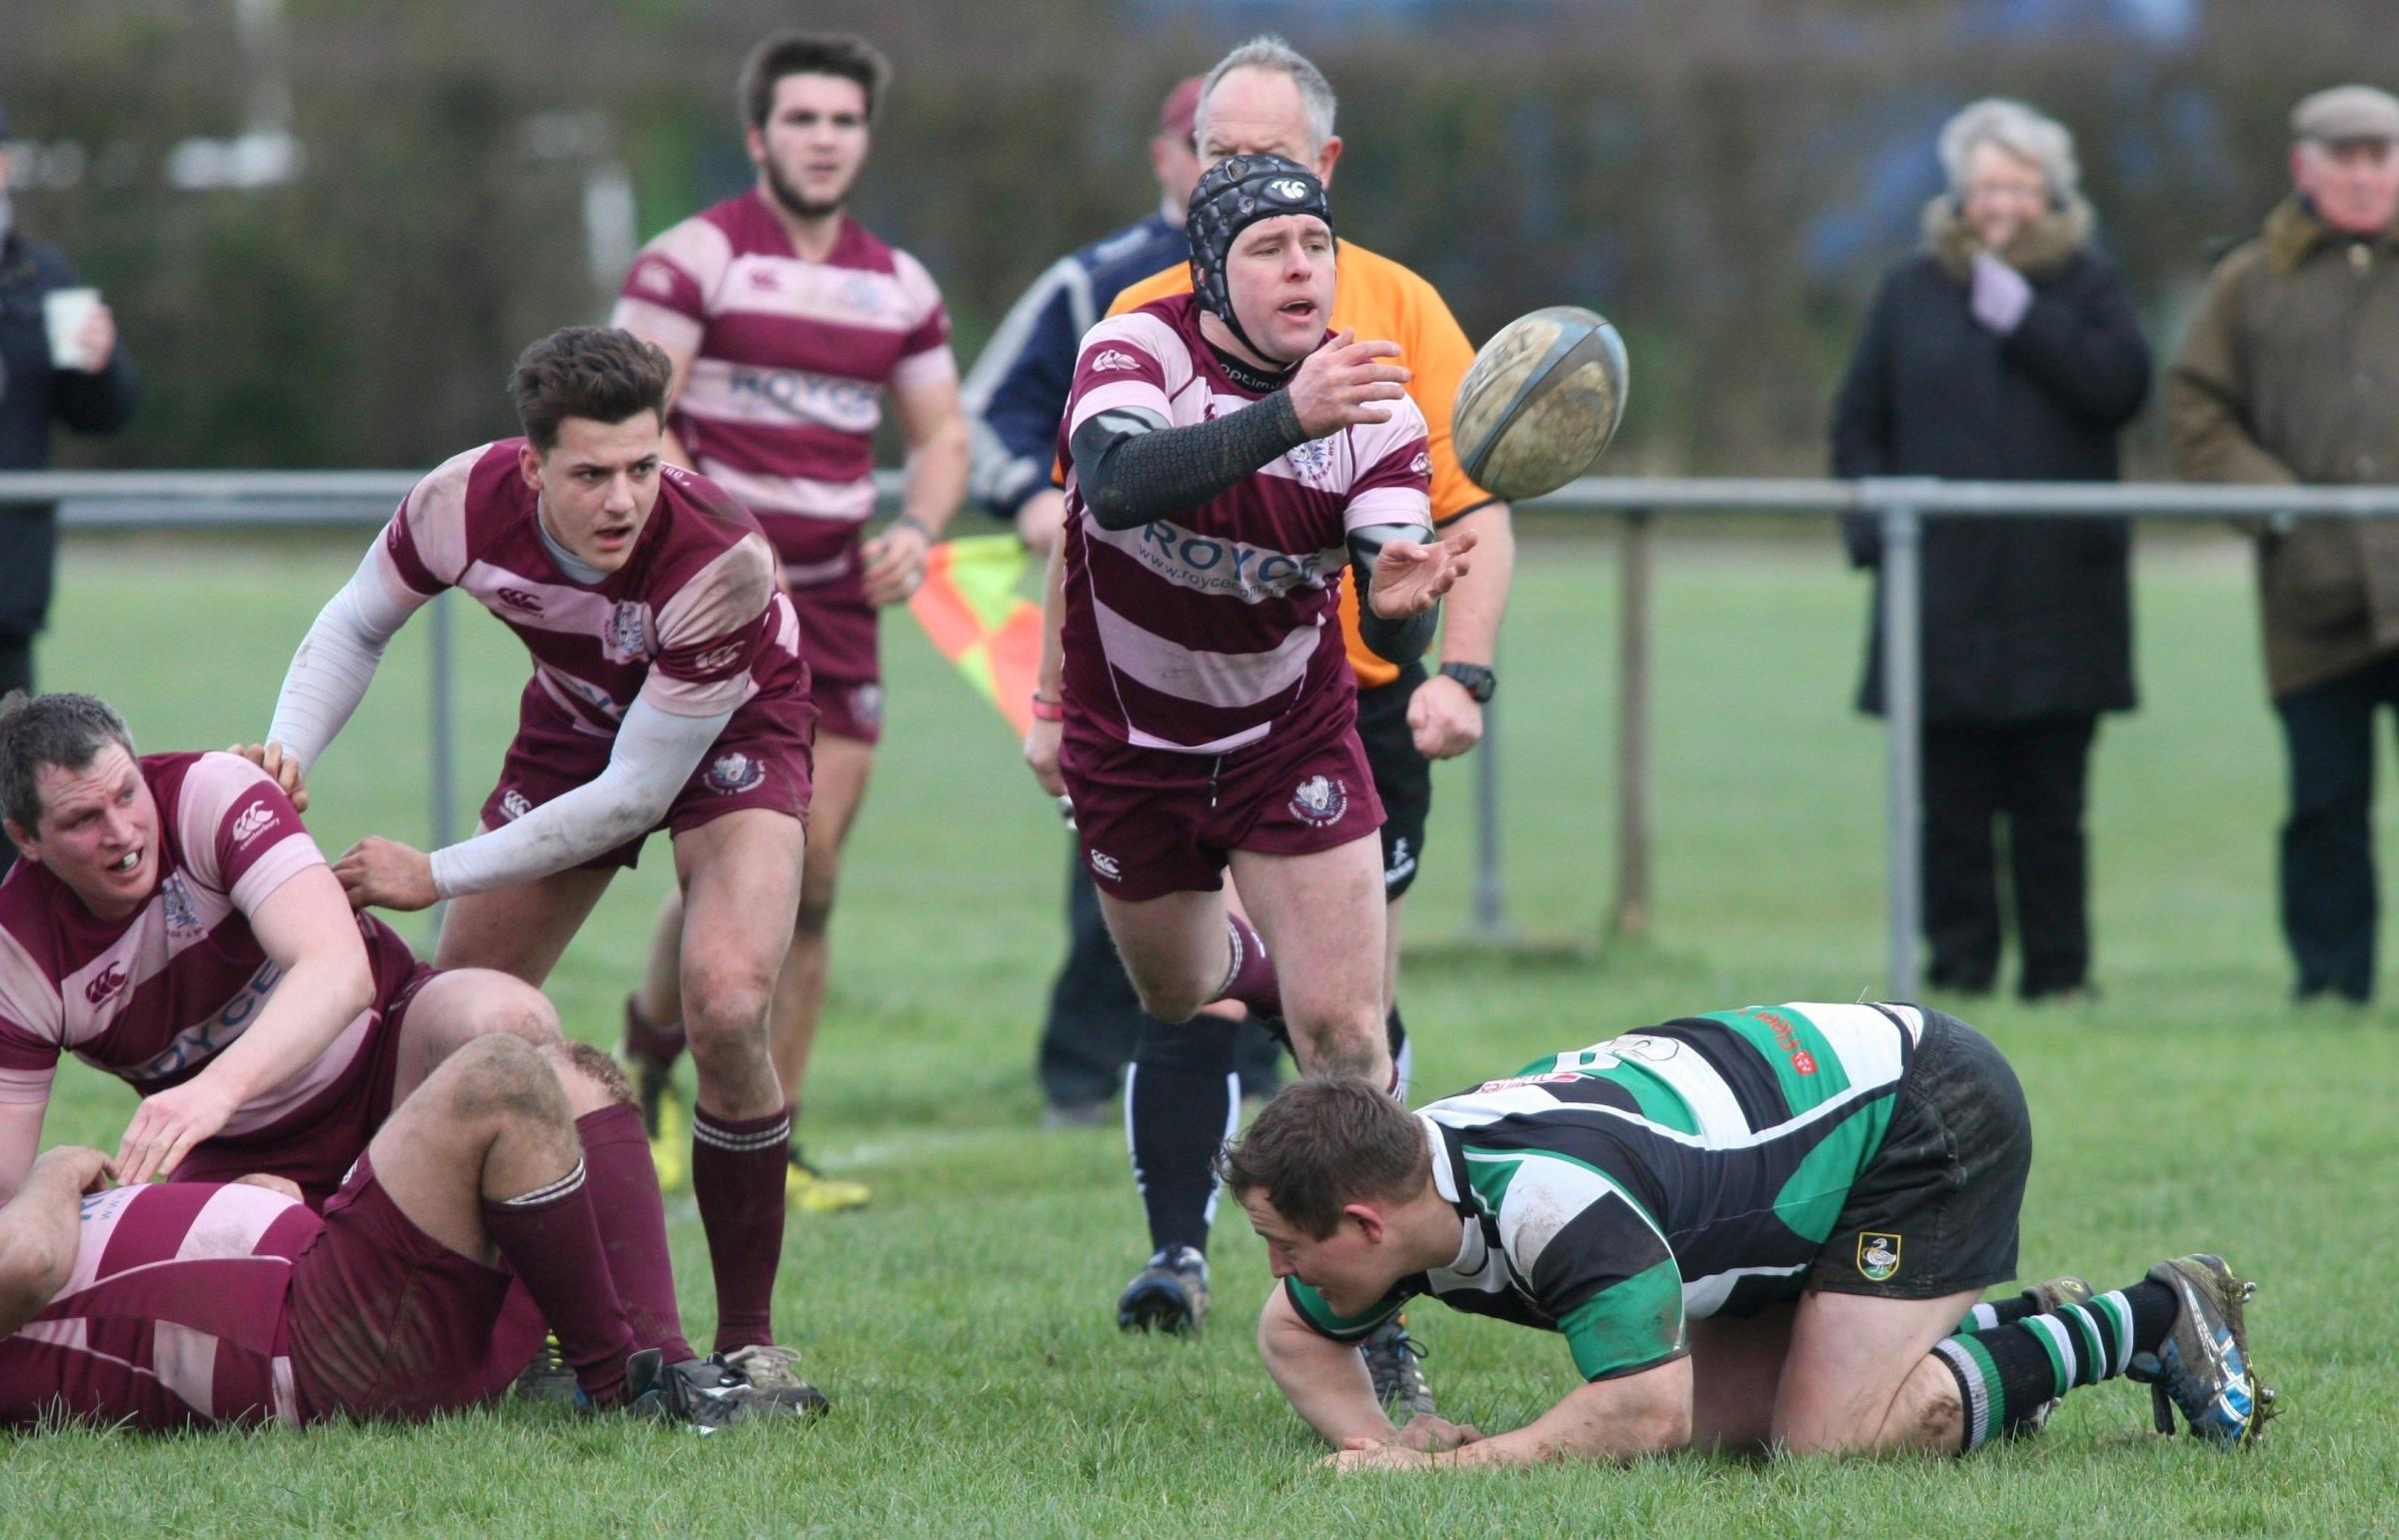 SCRUM-HALF: Chris Tomes in action for Swanage & Wareham